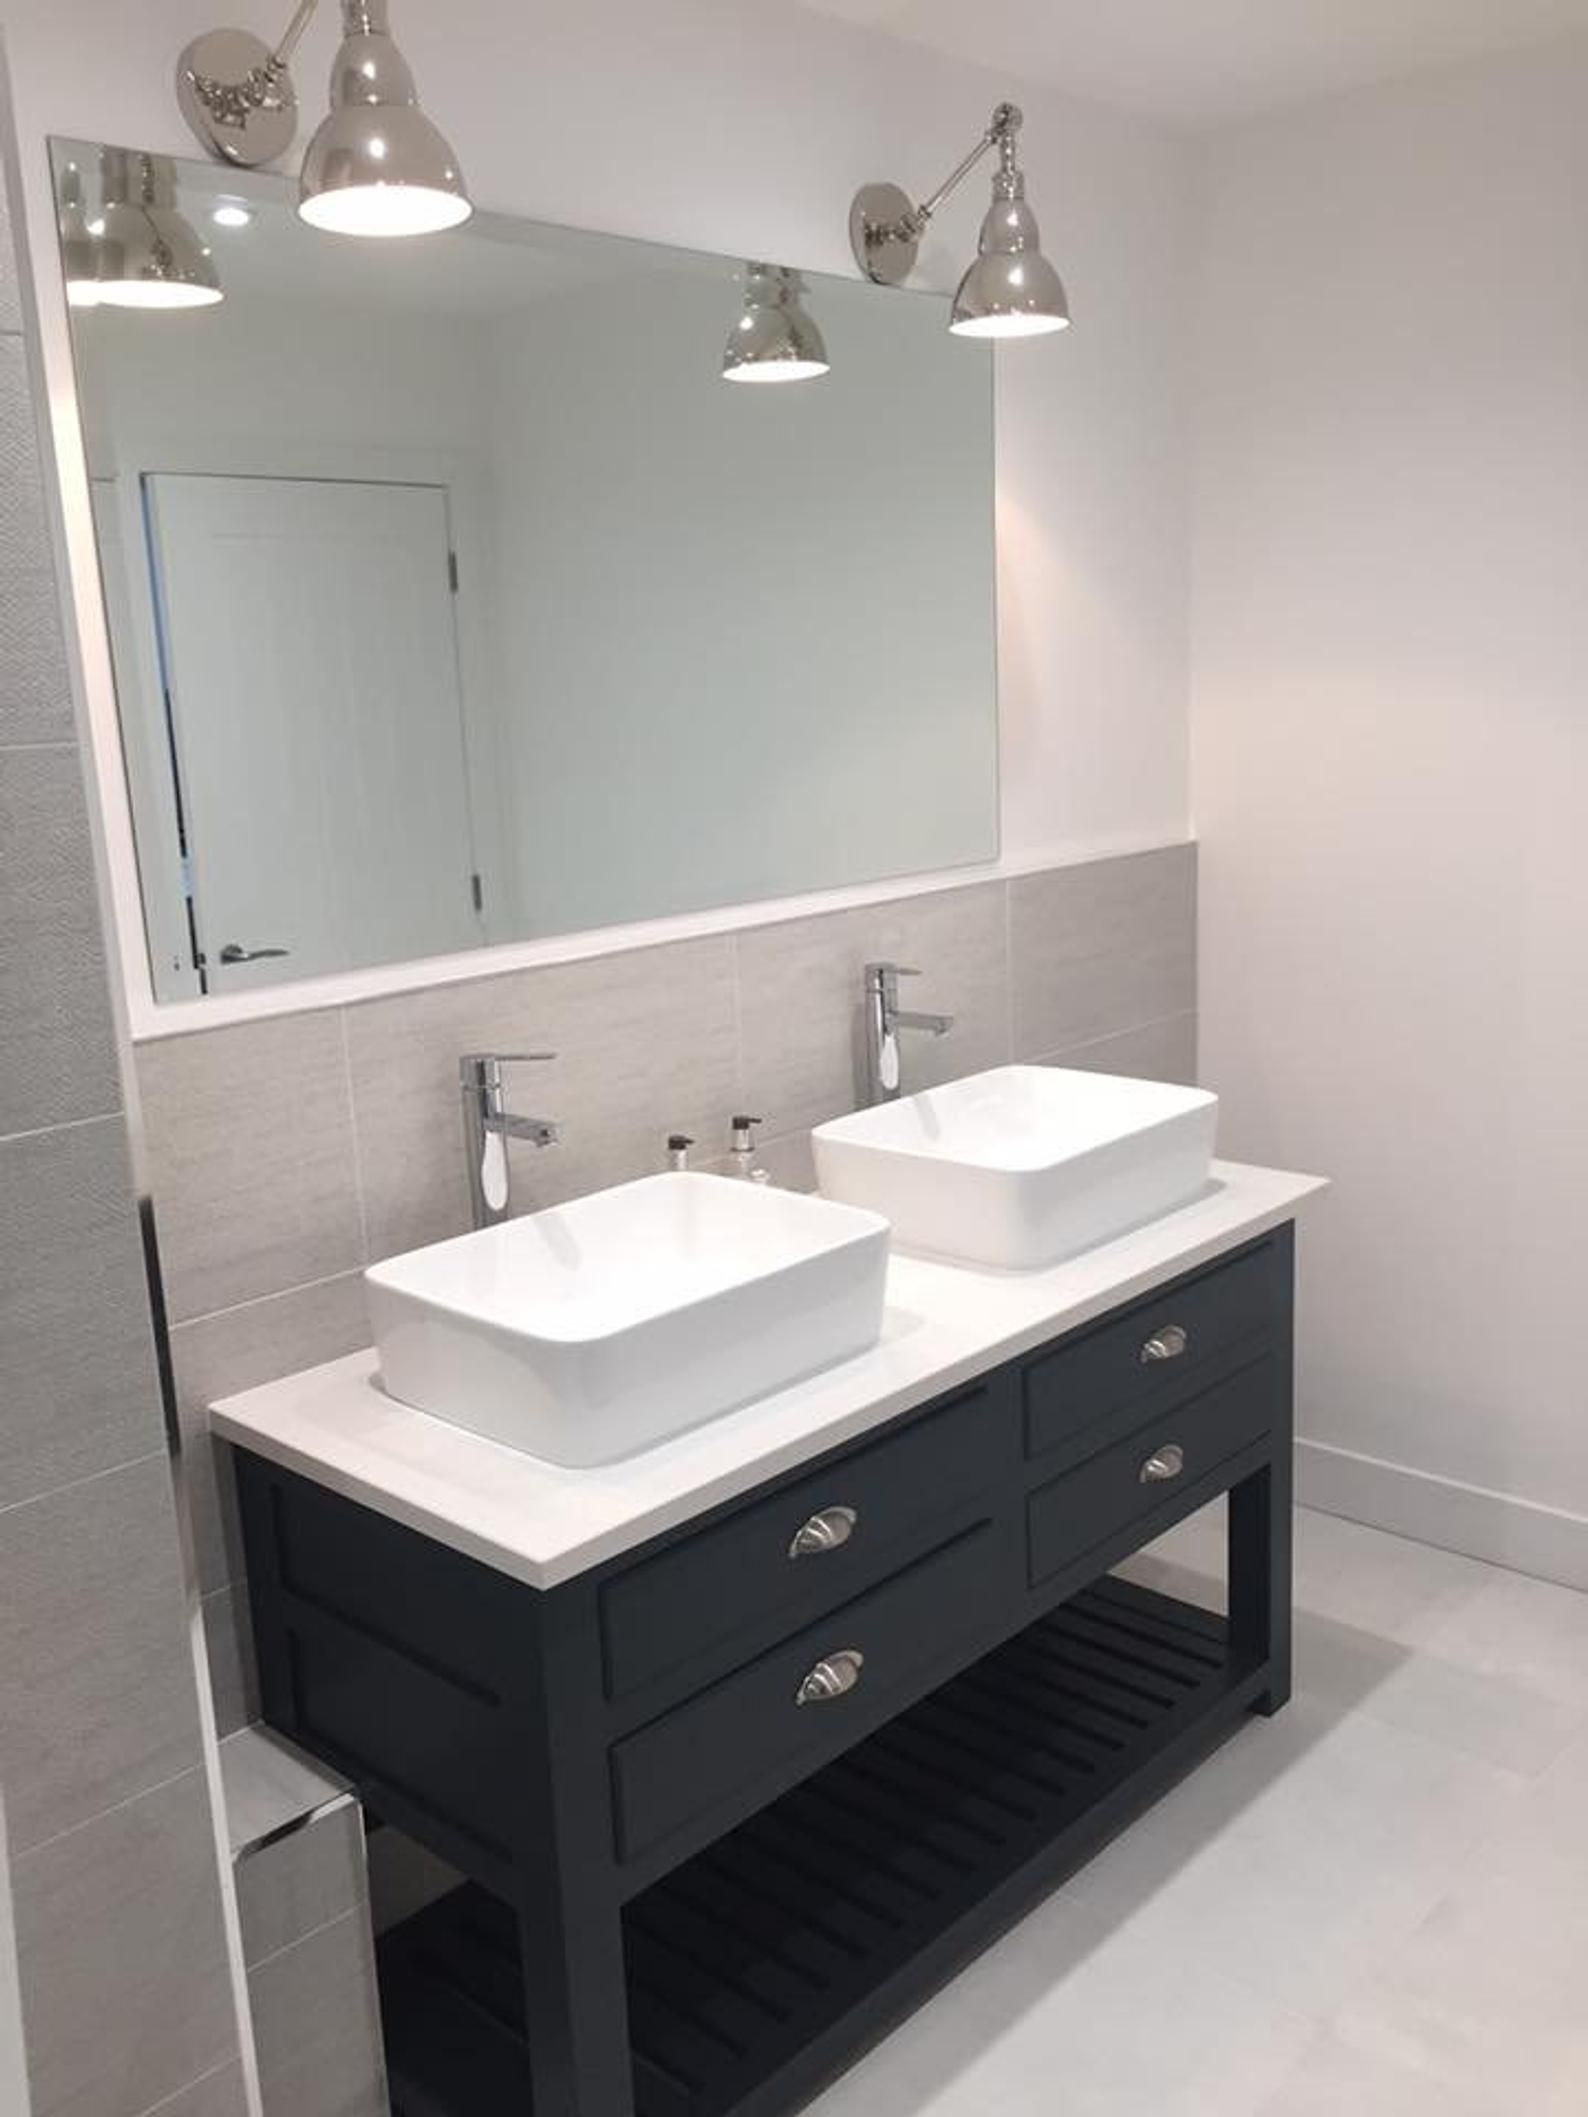 Bespoke Bathroom Vanity Unit With A Quartz Worktop Made To Order